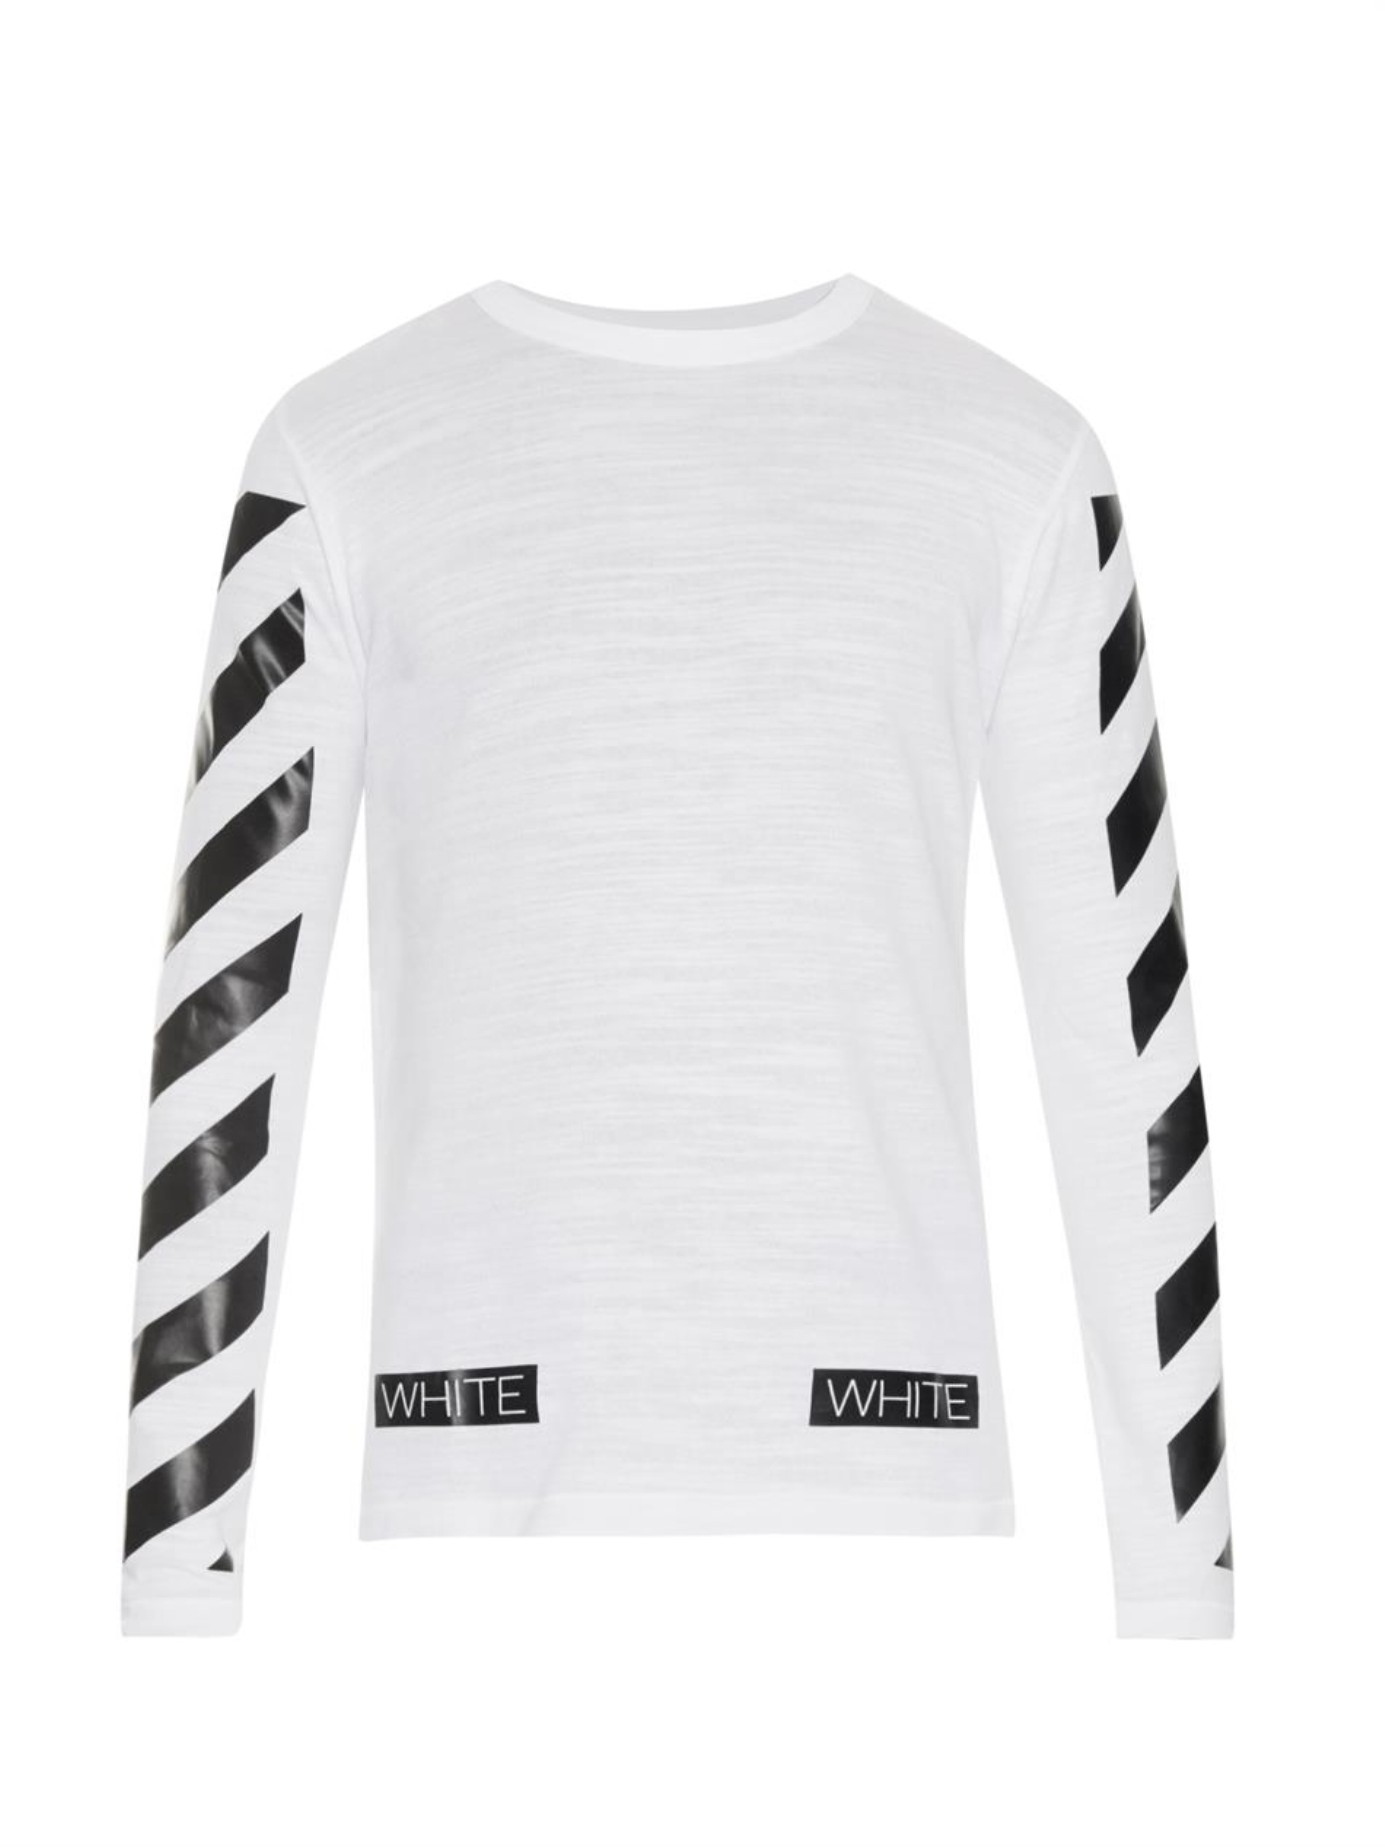 d79d9017b1d88d Off-White c/o Virgil Abloh Striped Long-Sleeved T-Shirt in White for ...